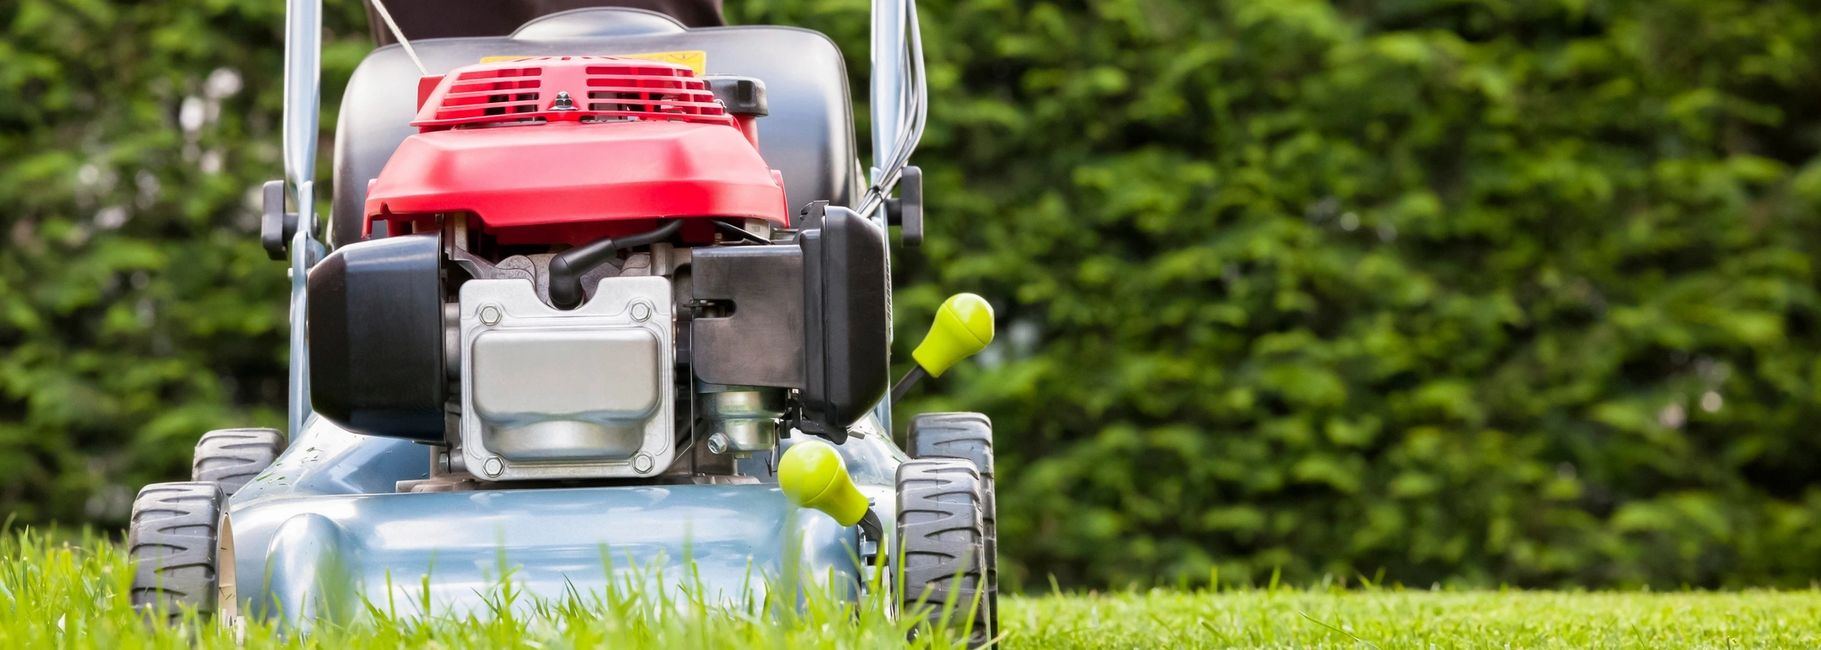 Lawn cutting and grass mowing services in the Dordogne. Second home an holiday home owners.